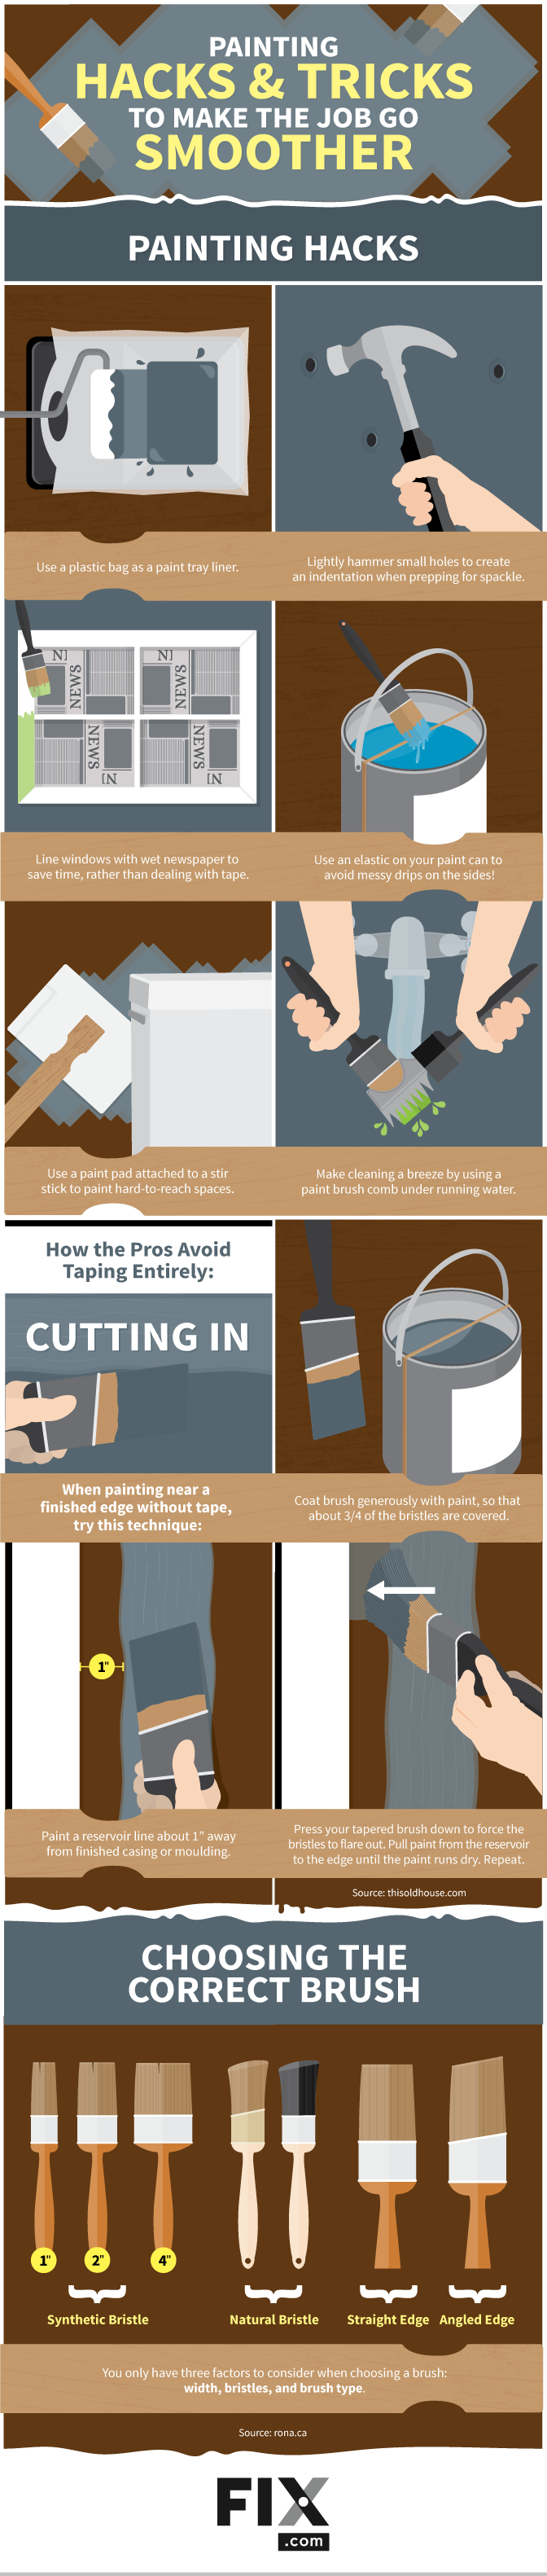 Painting Hacks and Tricks to Make the Job Go Smoother #infographic